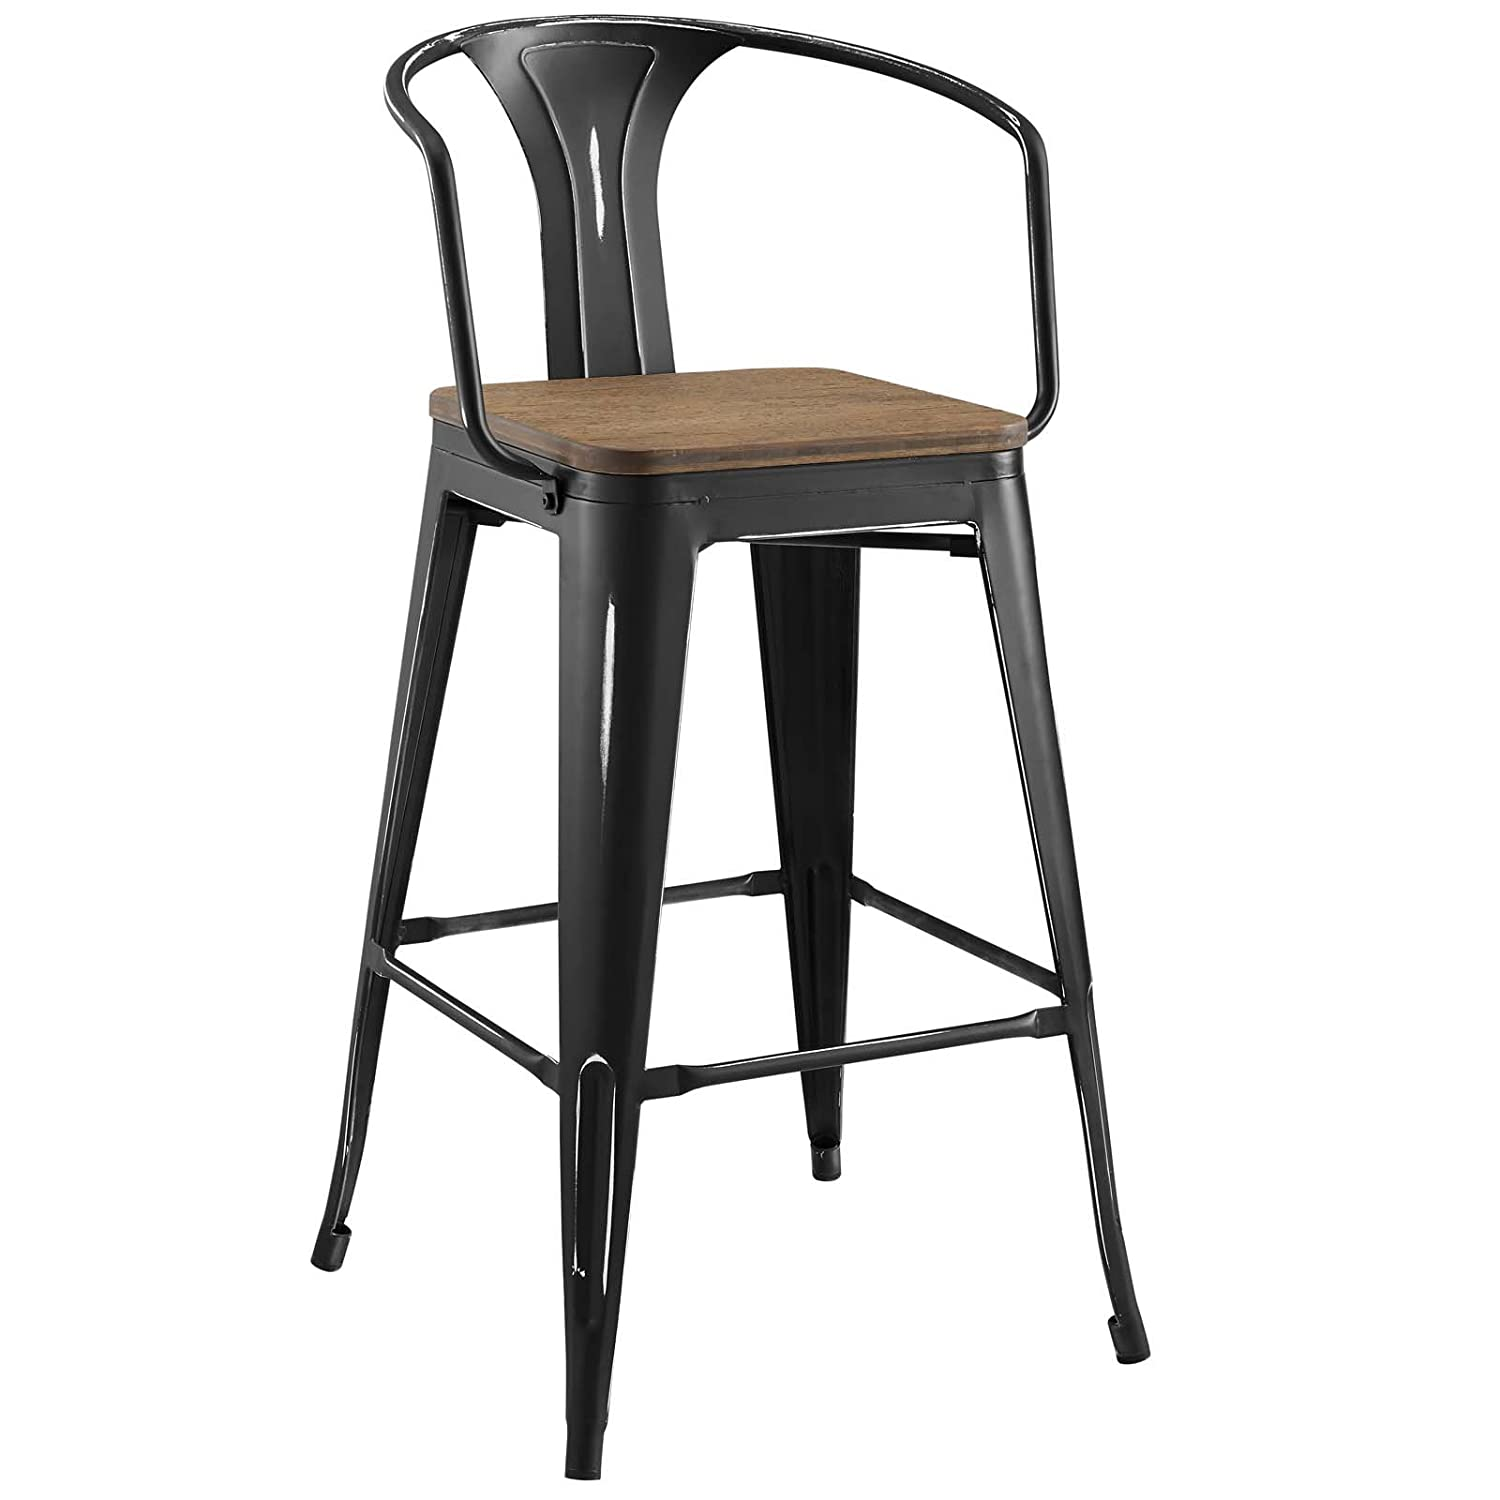 Amazon com america luxury stools industrial country cottage farm bar pub and dining kitchen bar stool chair metal steel wood black kitchen dining